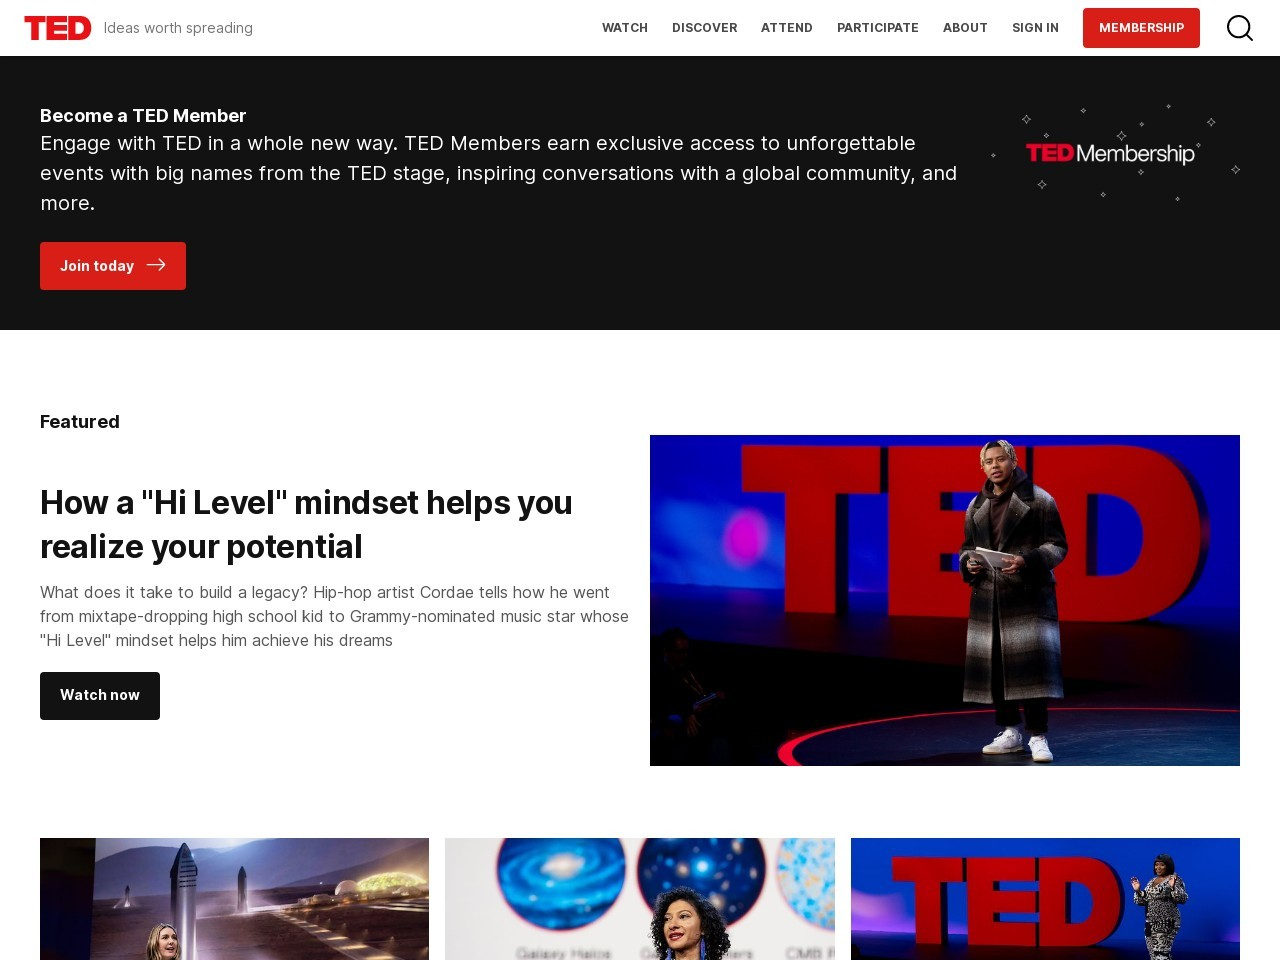 http://www.ted.com